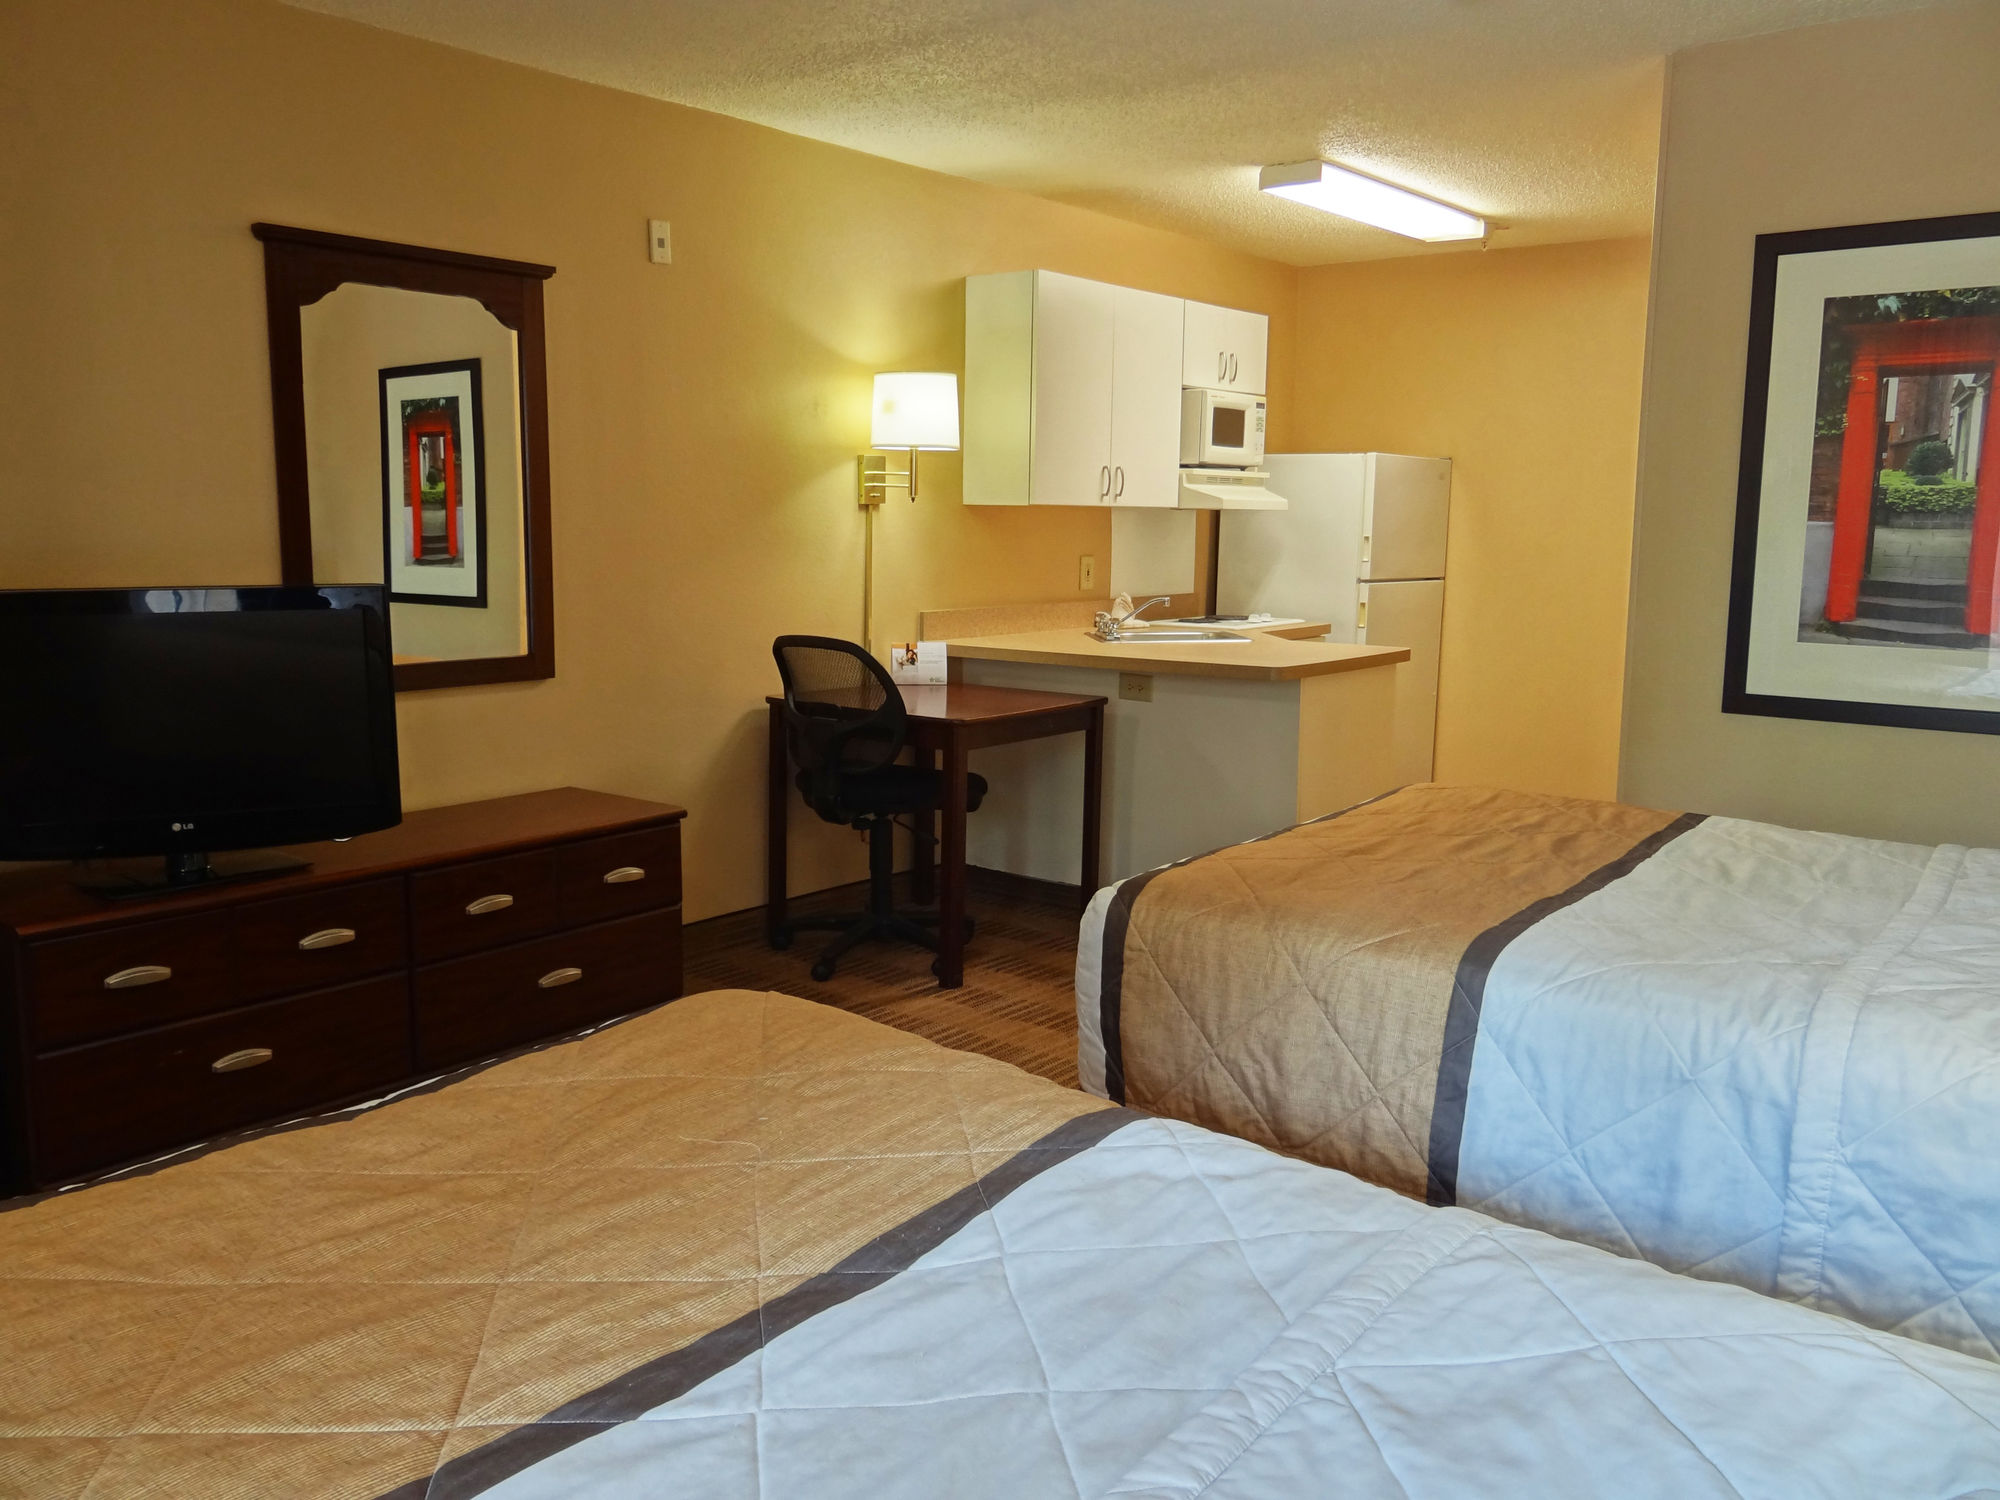 Morrisville Hotel Coupons for Morrisville, North Carolina ...